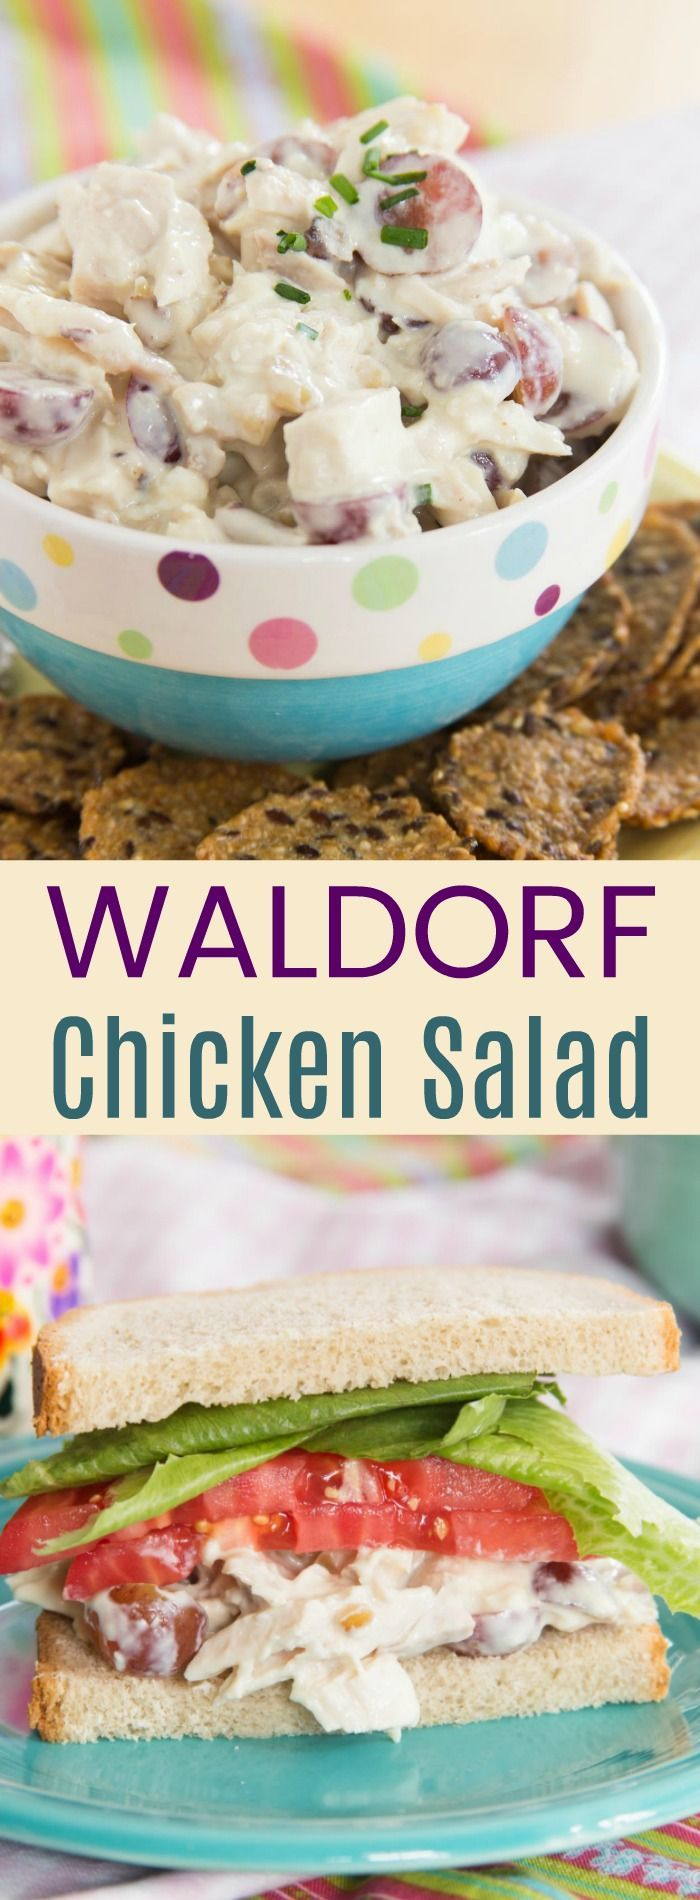 Waldorf Chicken Salad - use Greek yogurt to lighten up this classic chicken salad recipe with grapes and walnuts for a protein-packed healthy lunch.